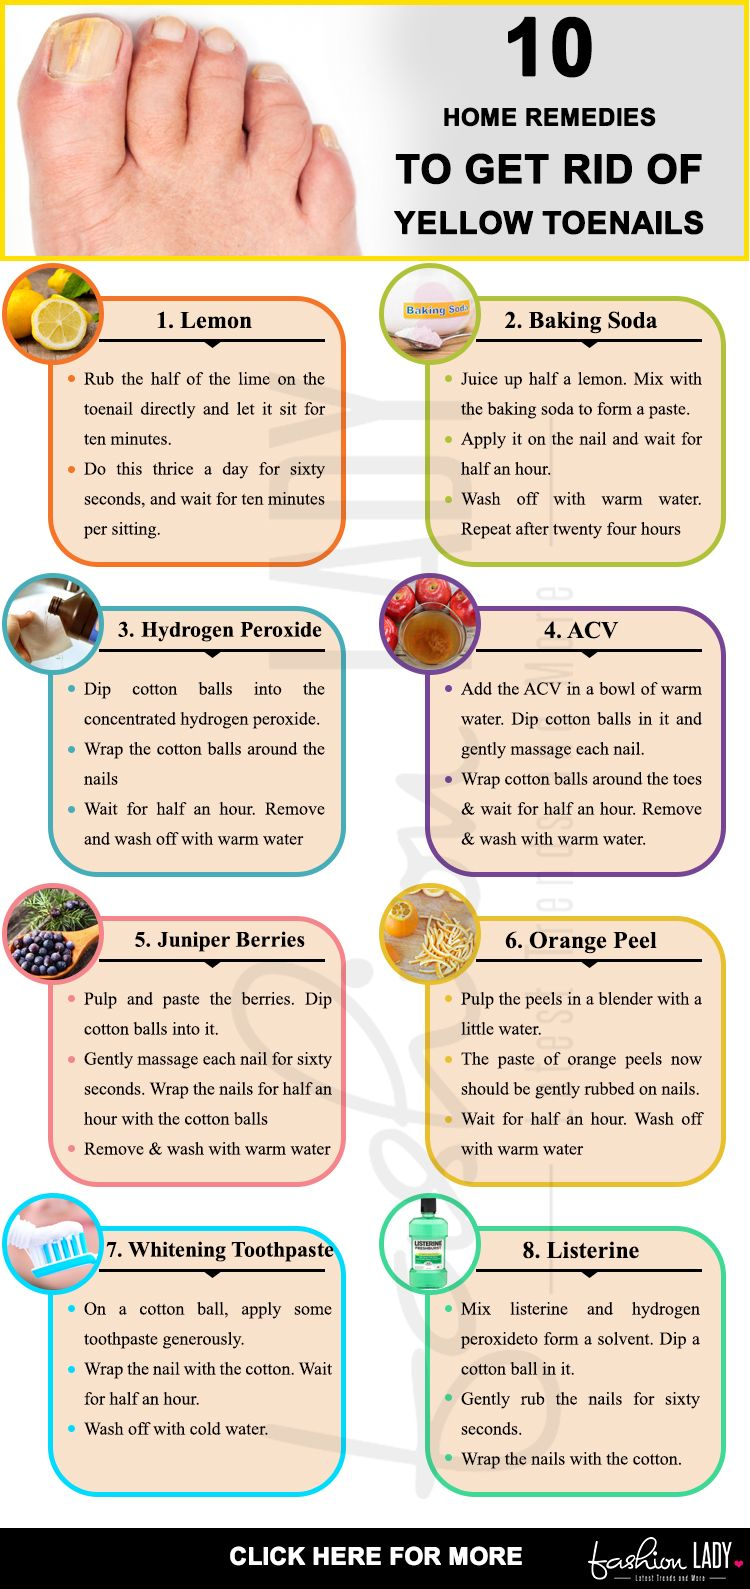 13 Home Remedies To Get Rid Of Yellow Toenails   Home Remedies ...